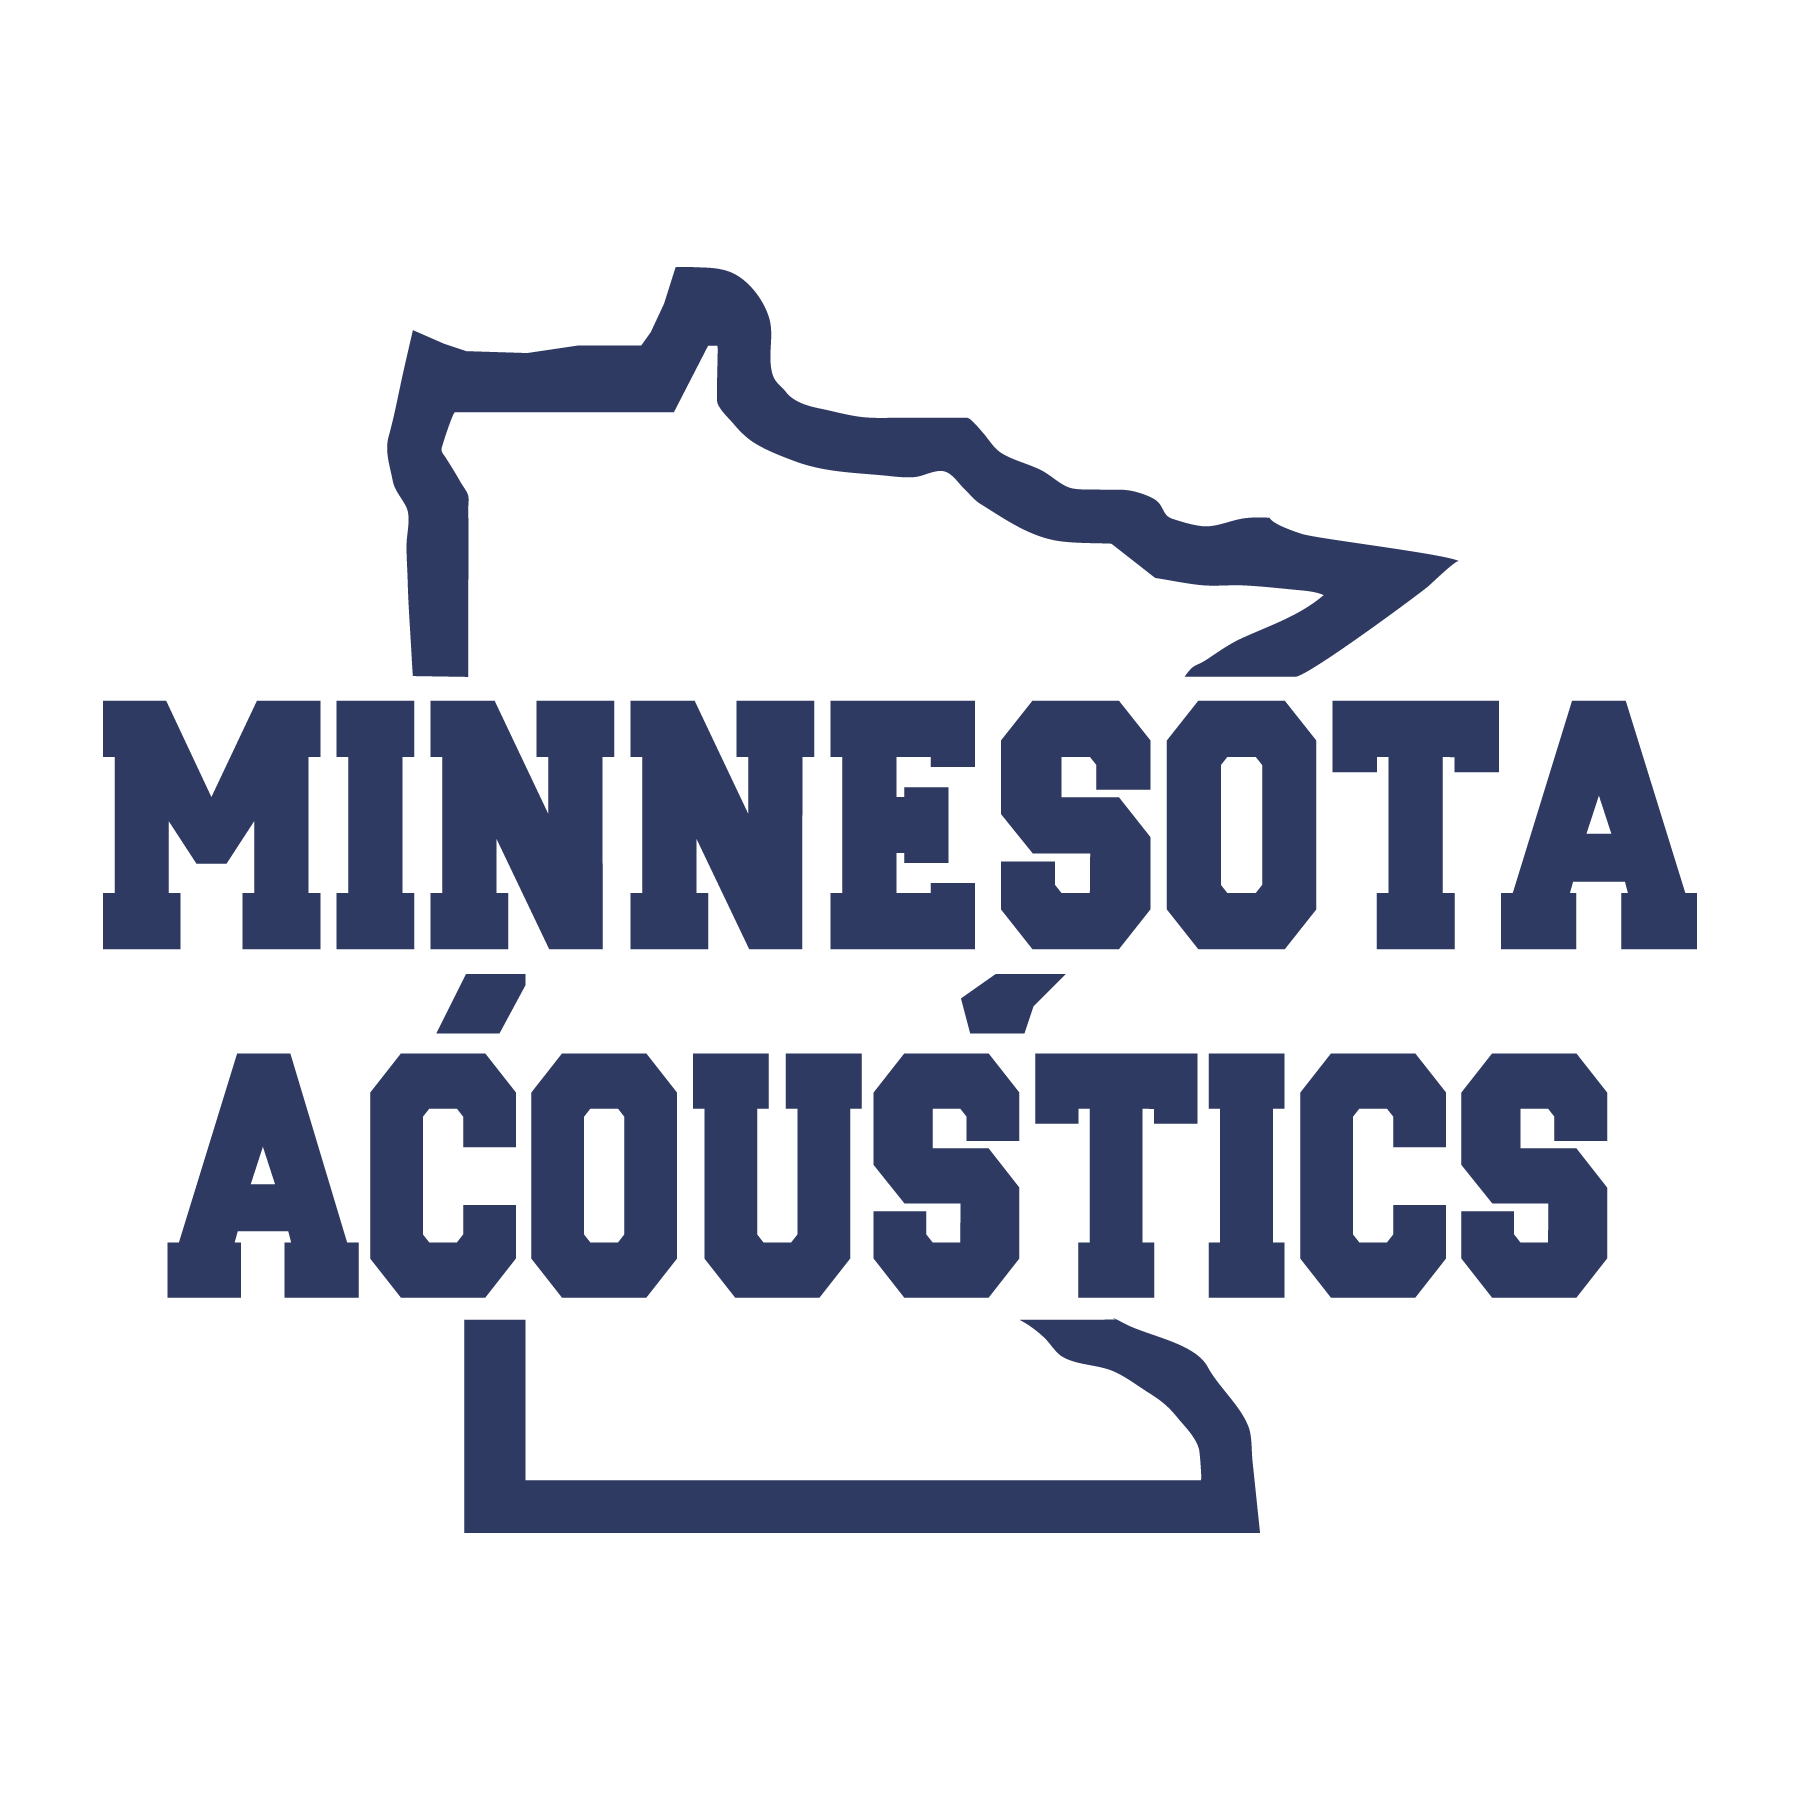 Minnesota Acoustics Inc.